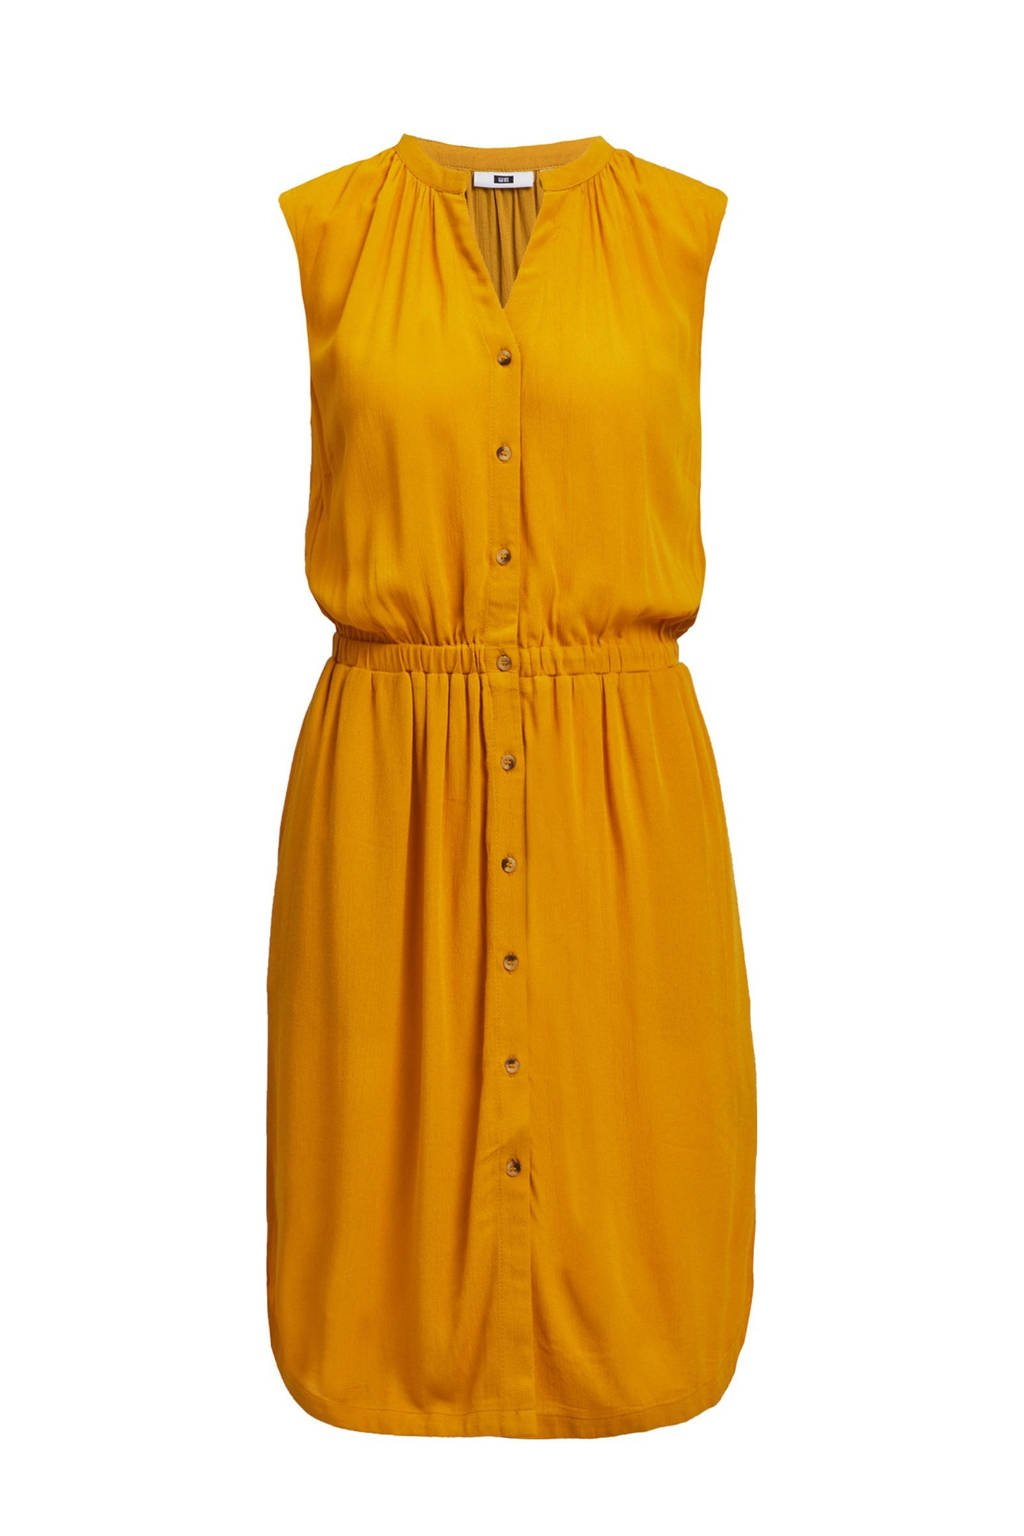 WE Fashion blousejurk met all over print mustard